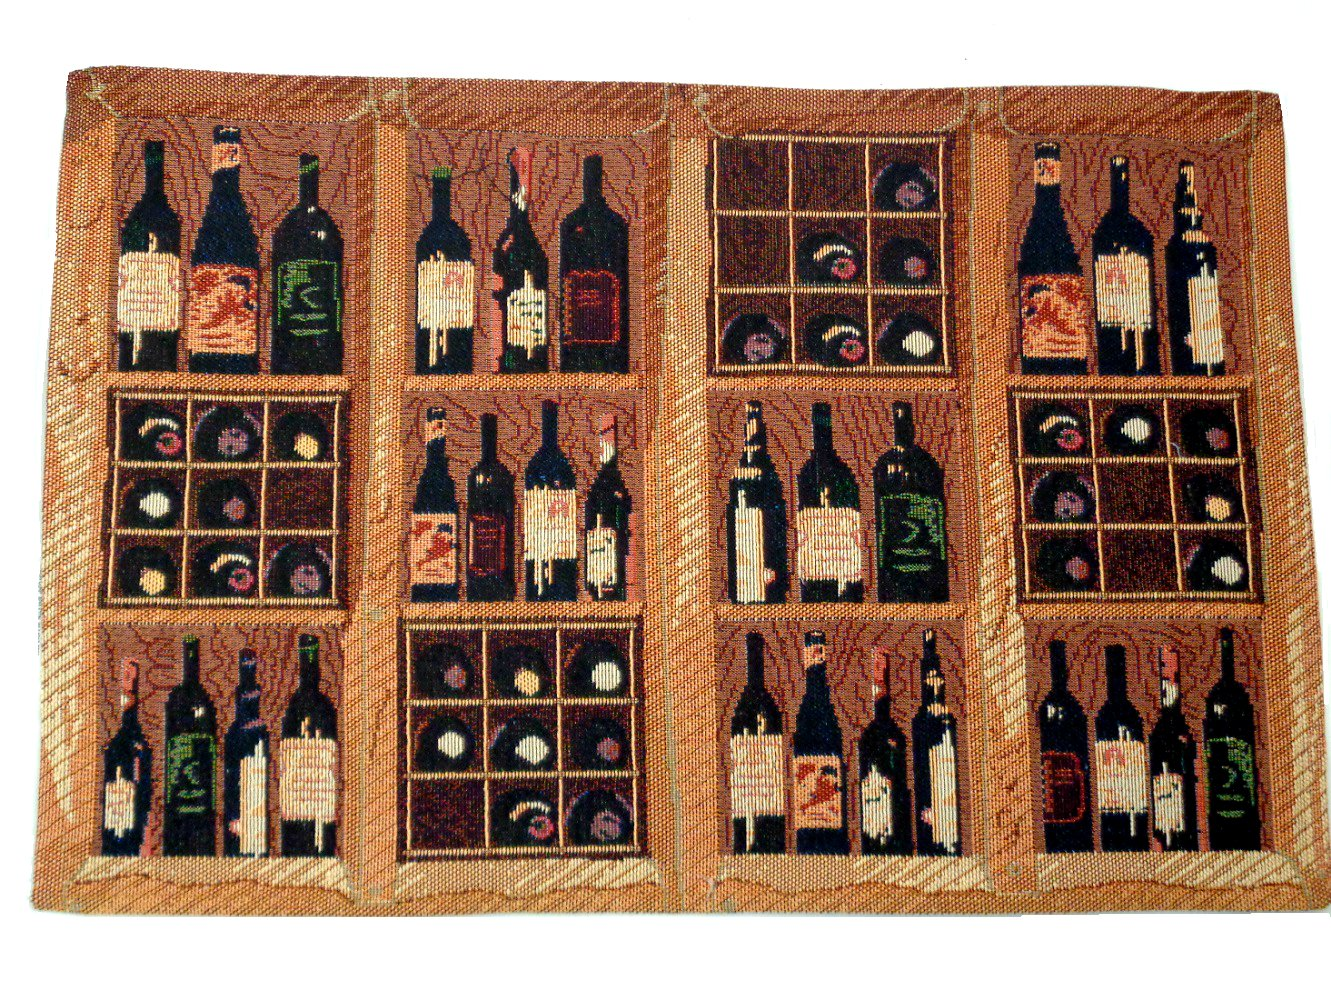 Wine Bottles Placemats Crates of Wine